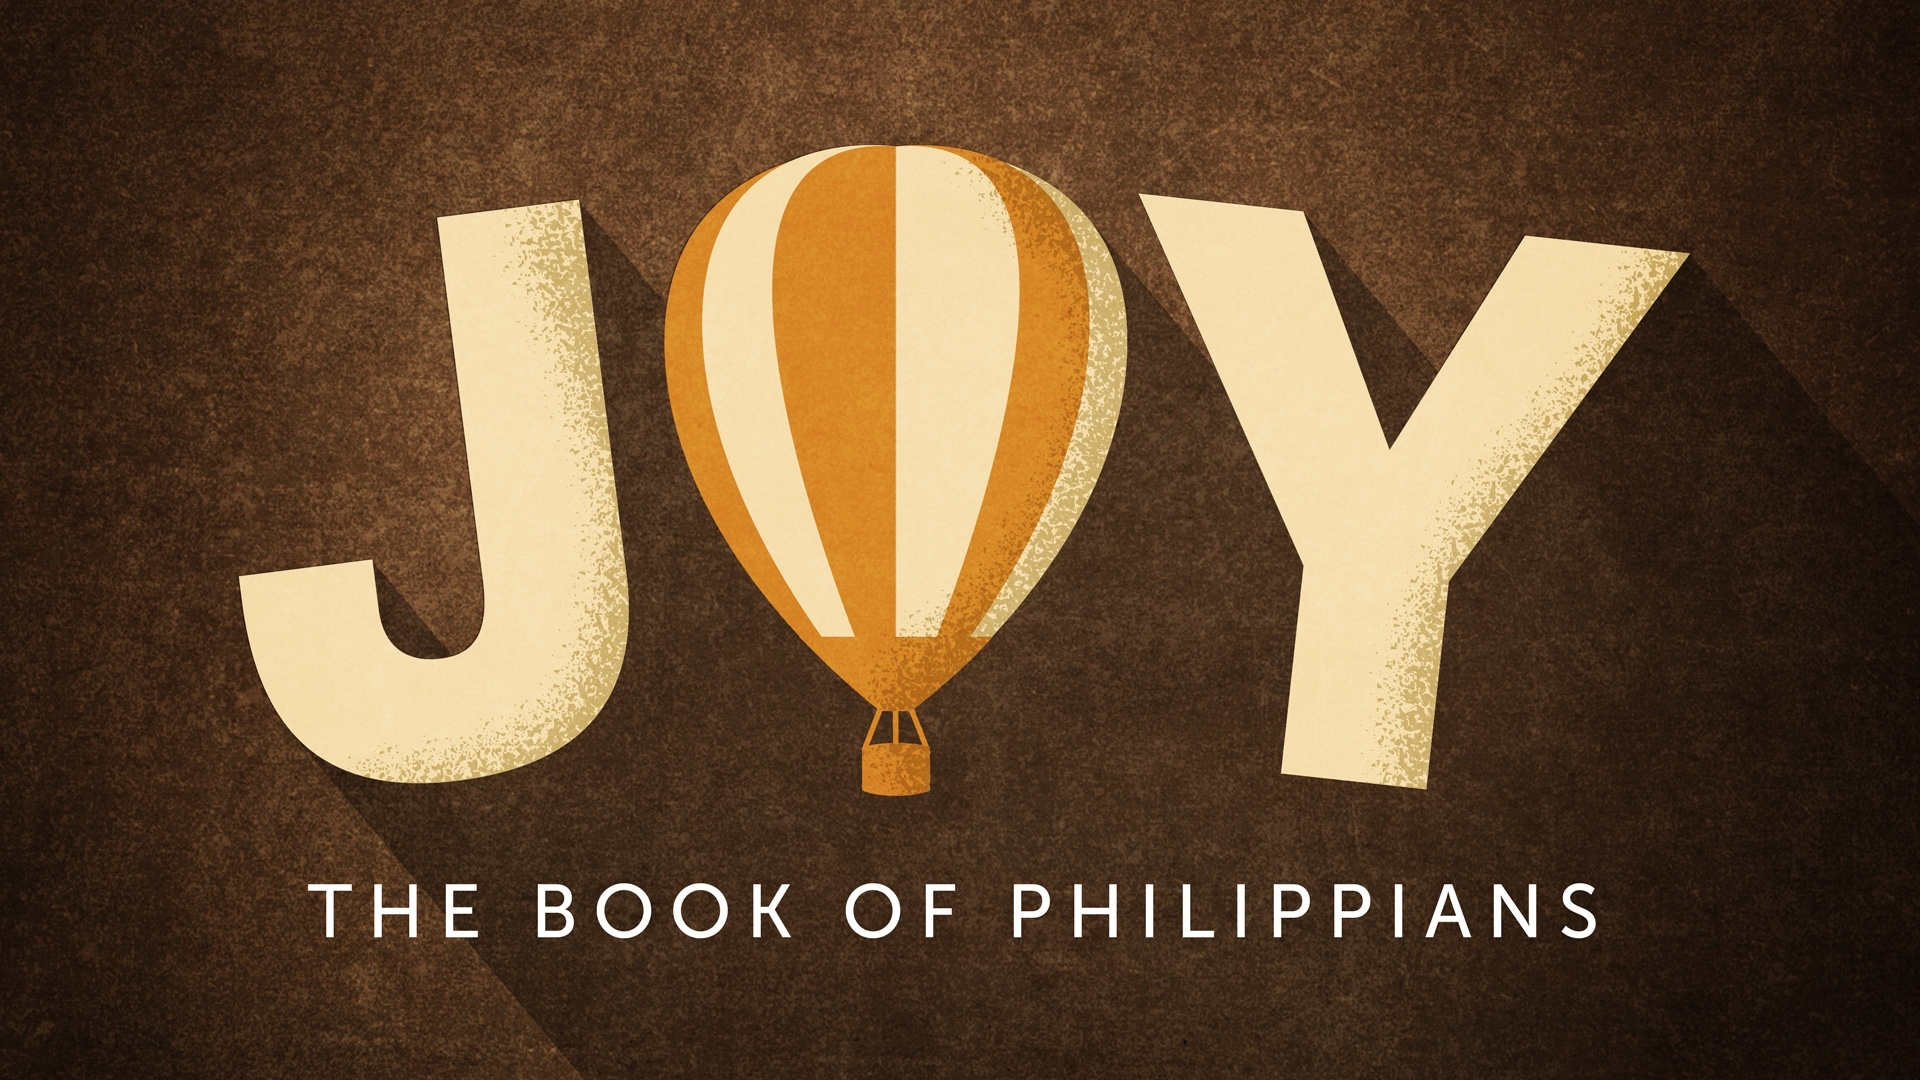 Joy comes from putting Christ ahead of everything in your life and being unified with others who do the same.